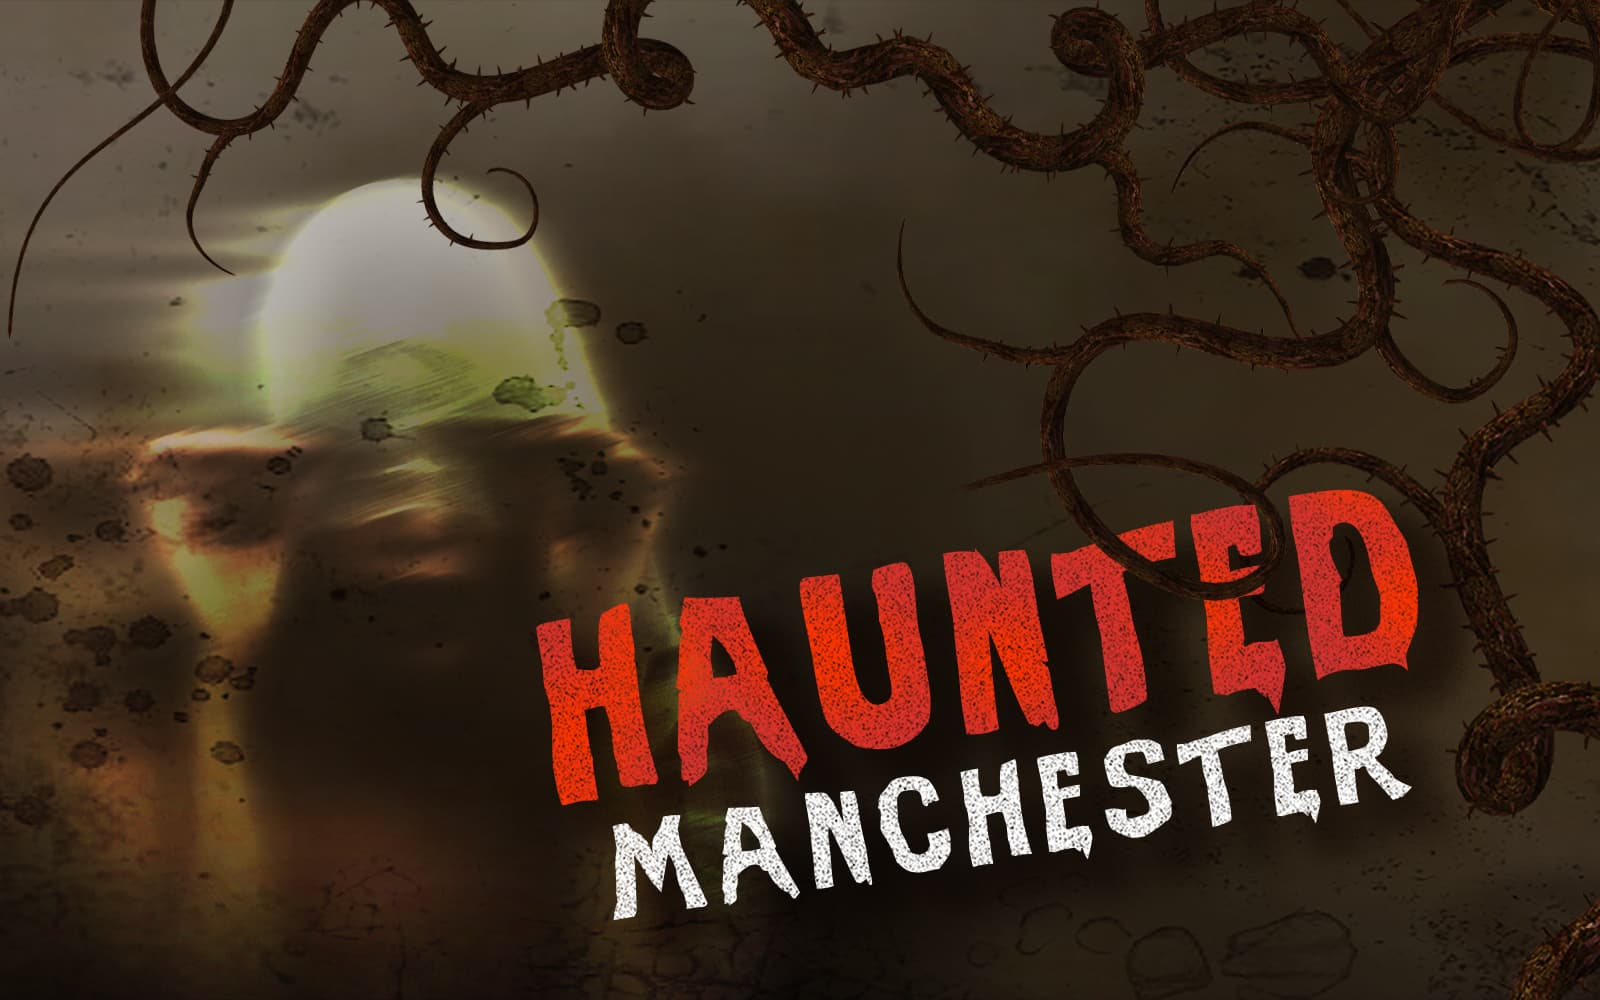 Haunted Manchester image